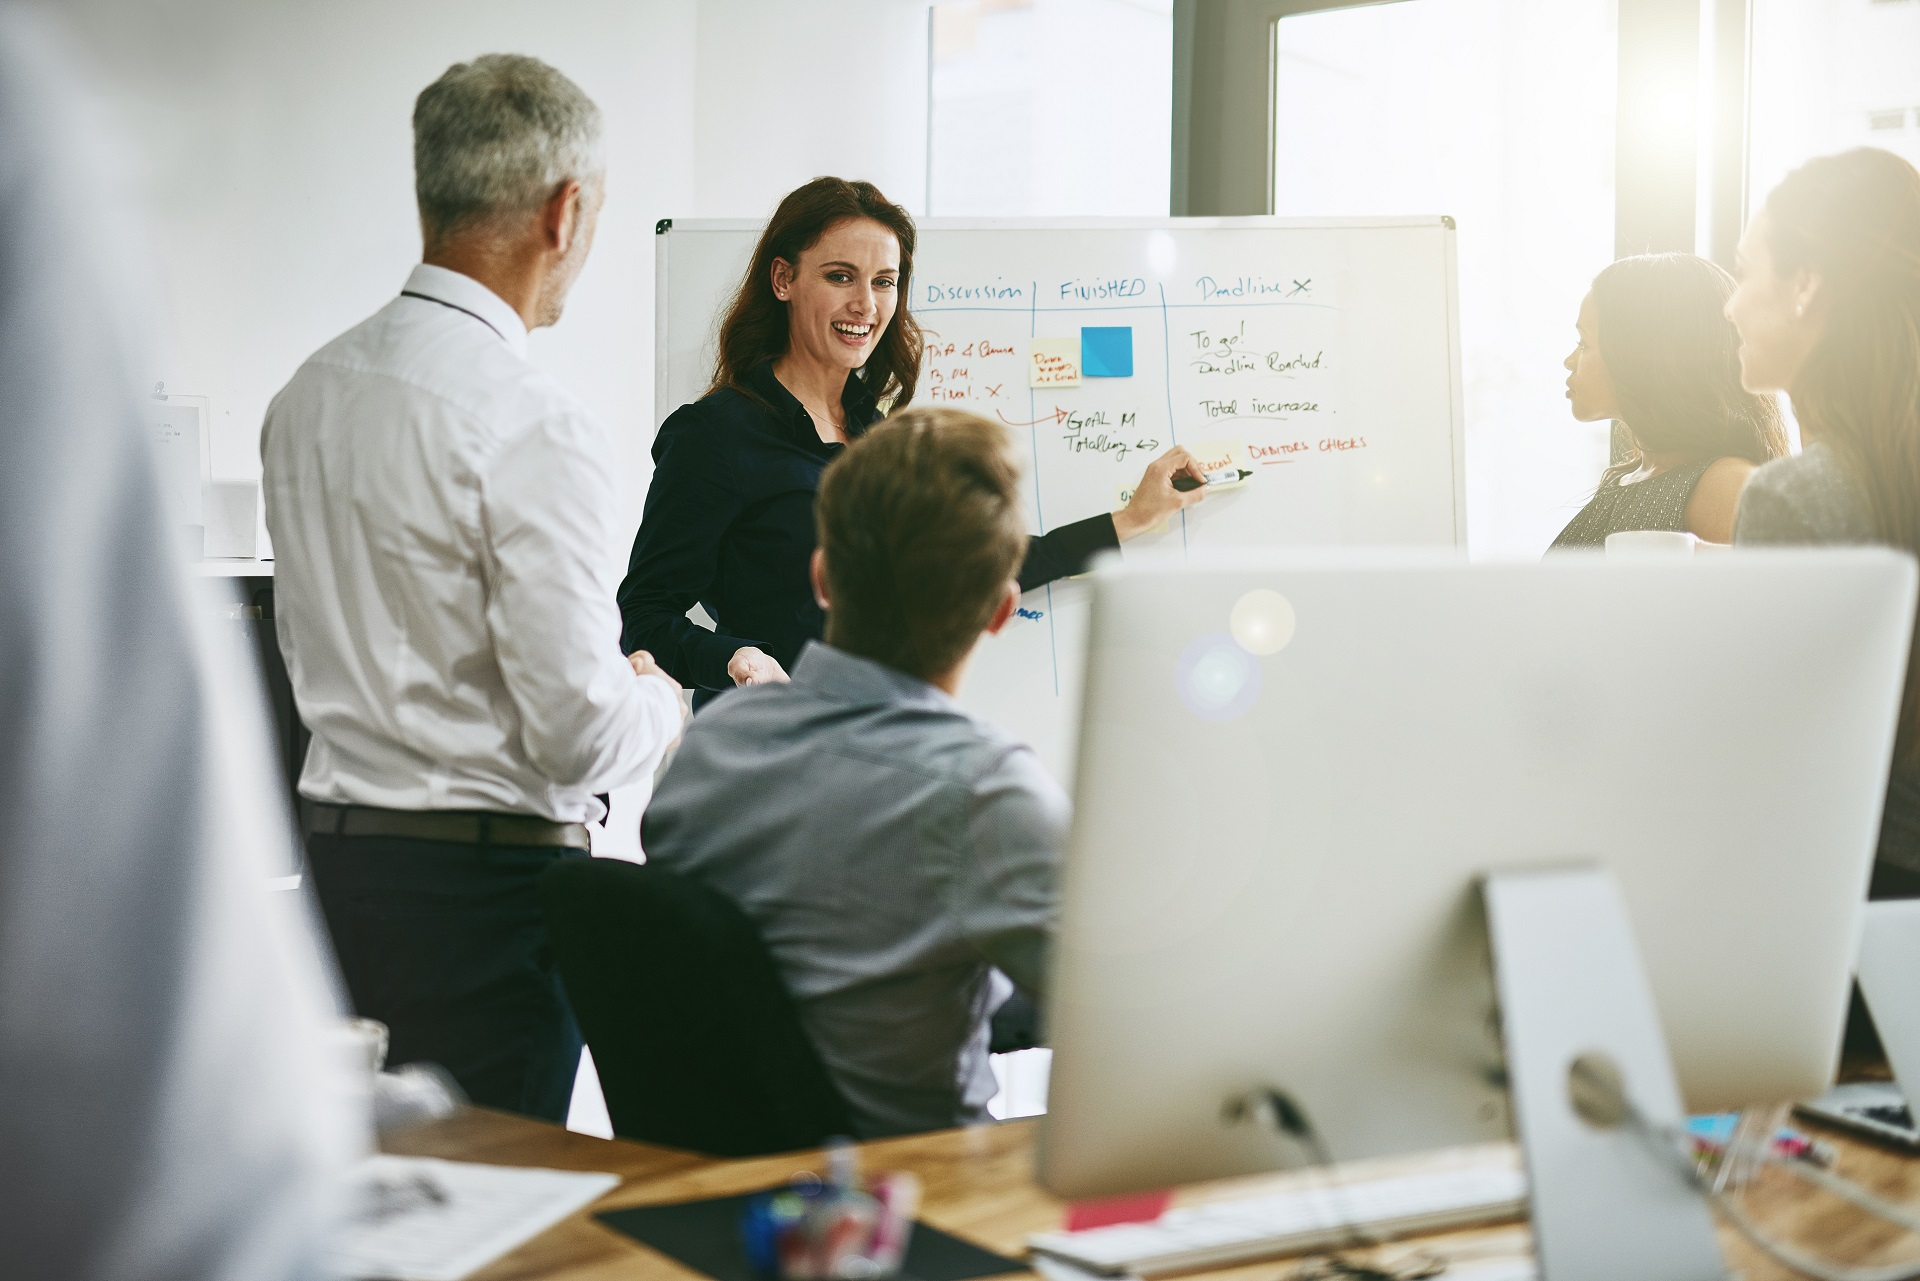 How Small Business Owners can Become More Confident Leaders